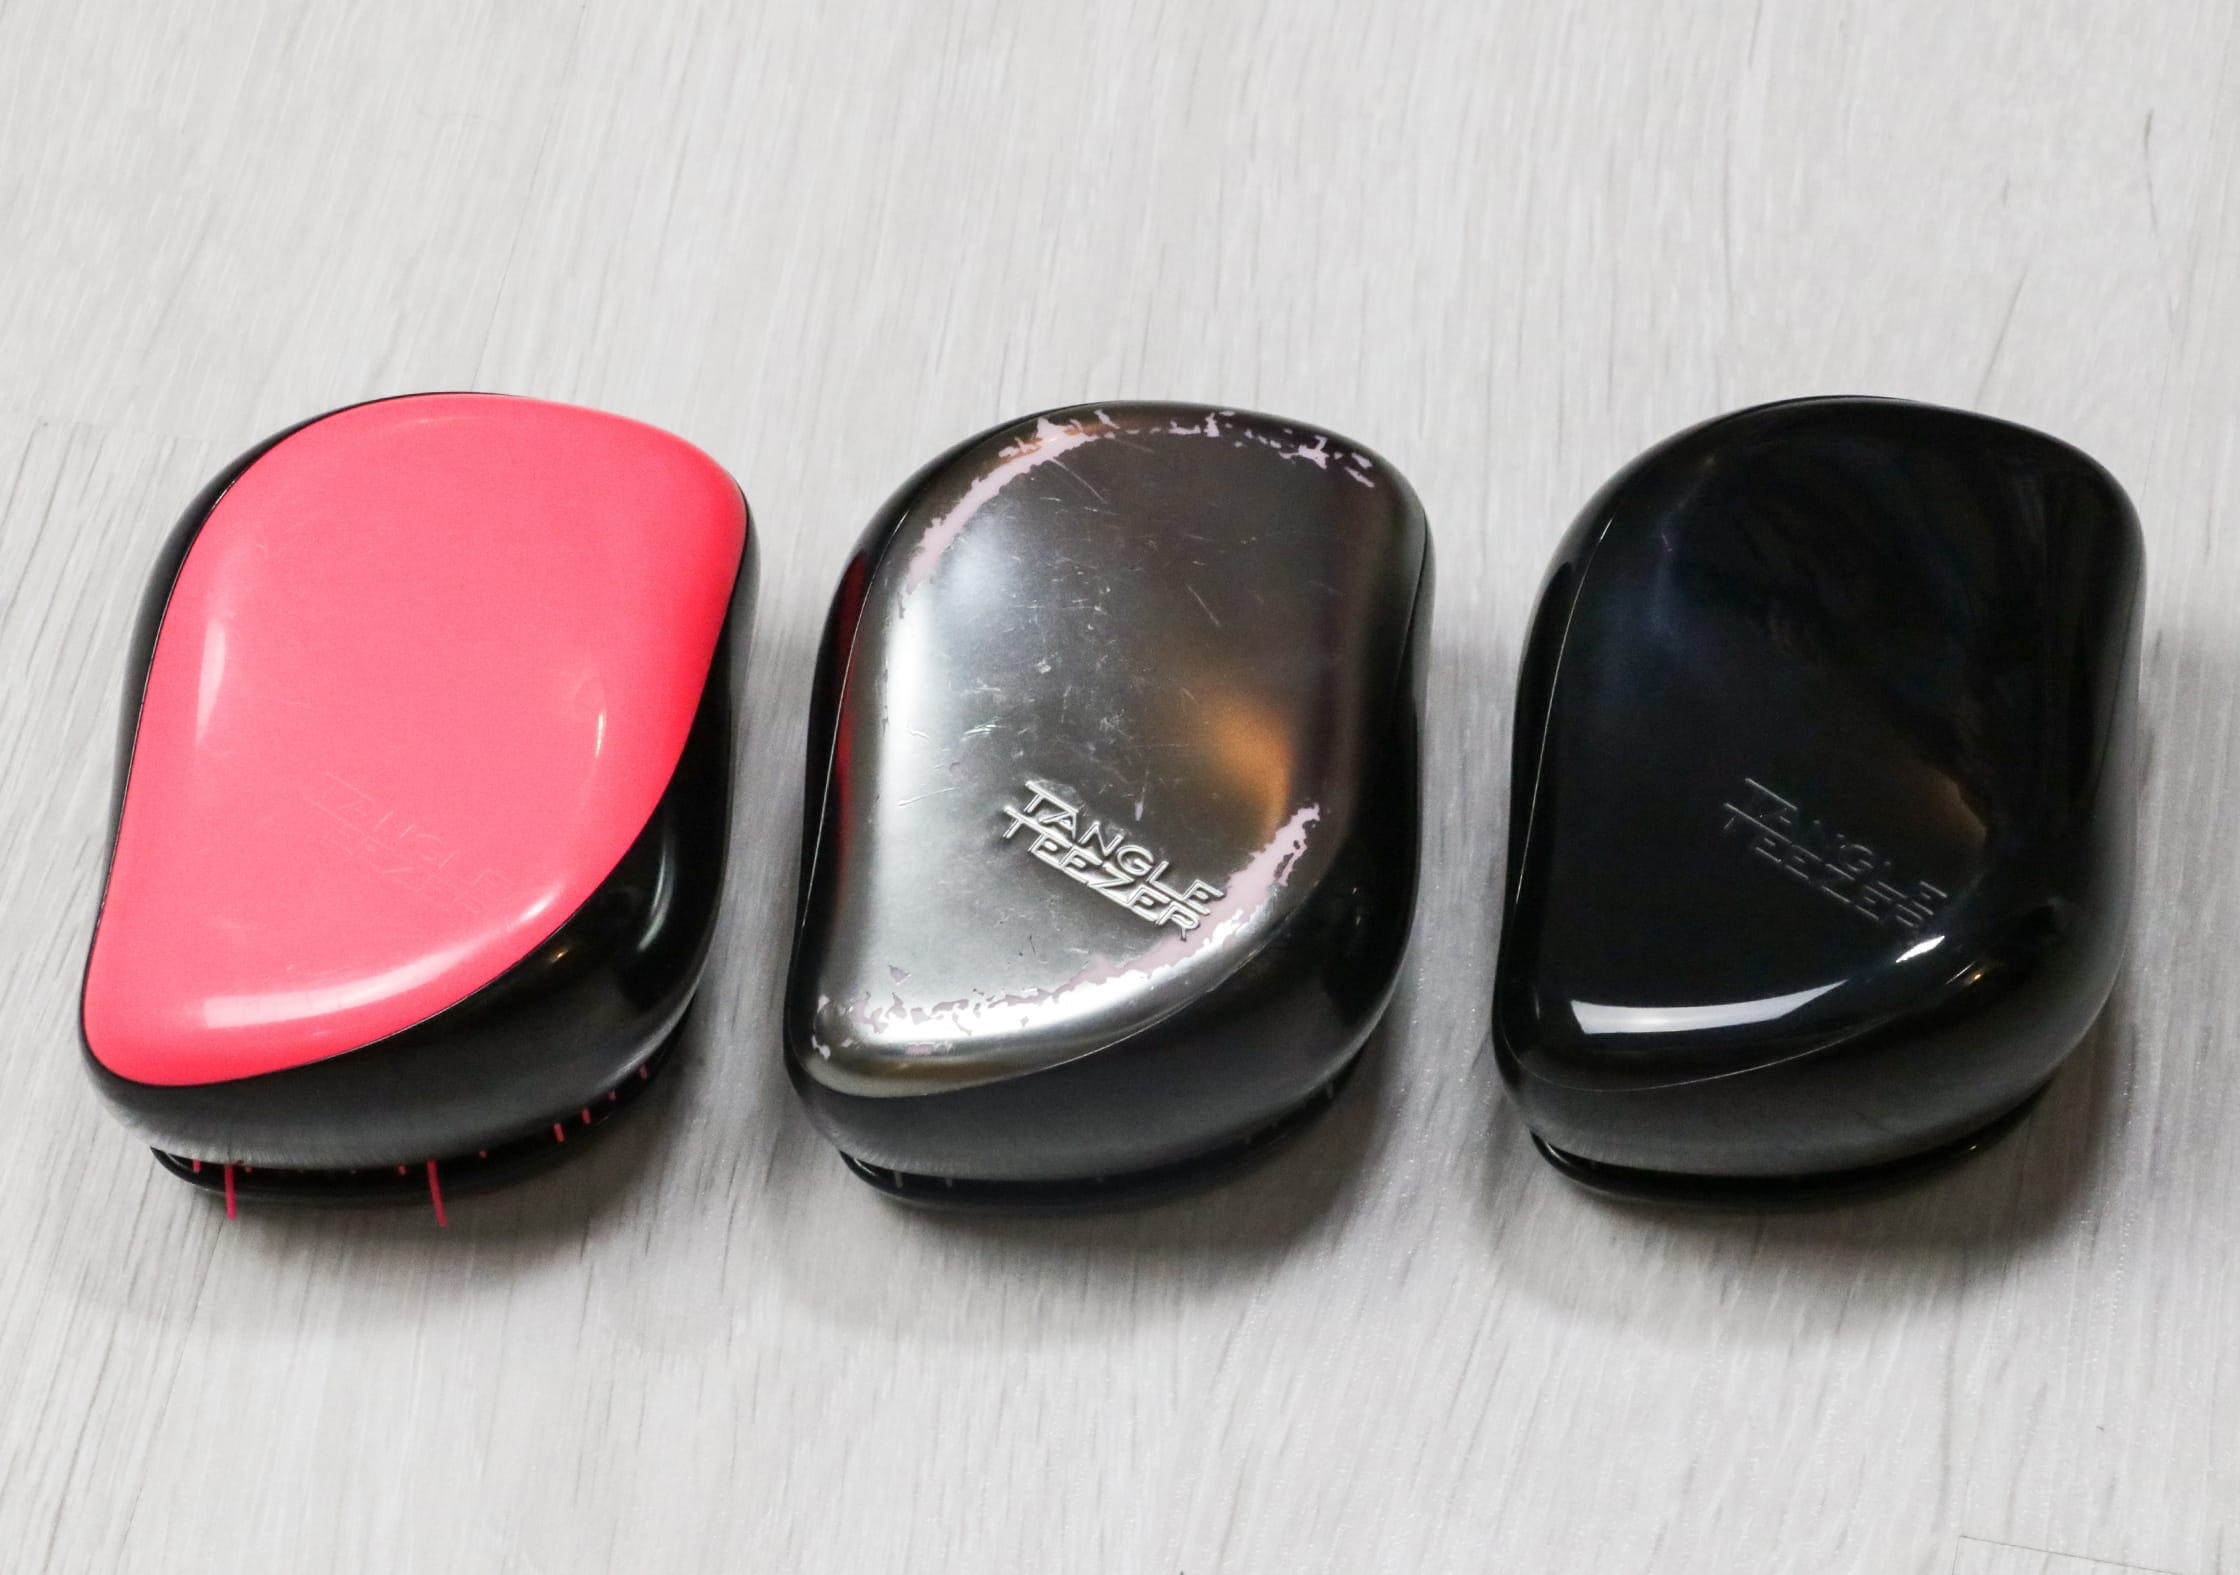 All Three Colors Of The Tangle Teezer Compact Styler We Have Been Testing